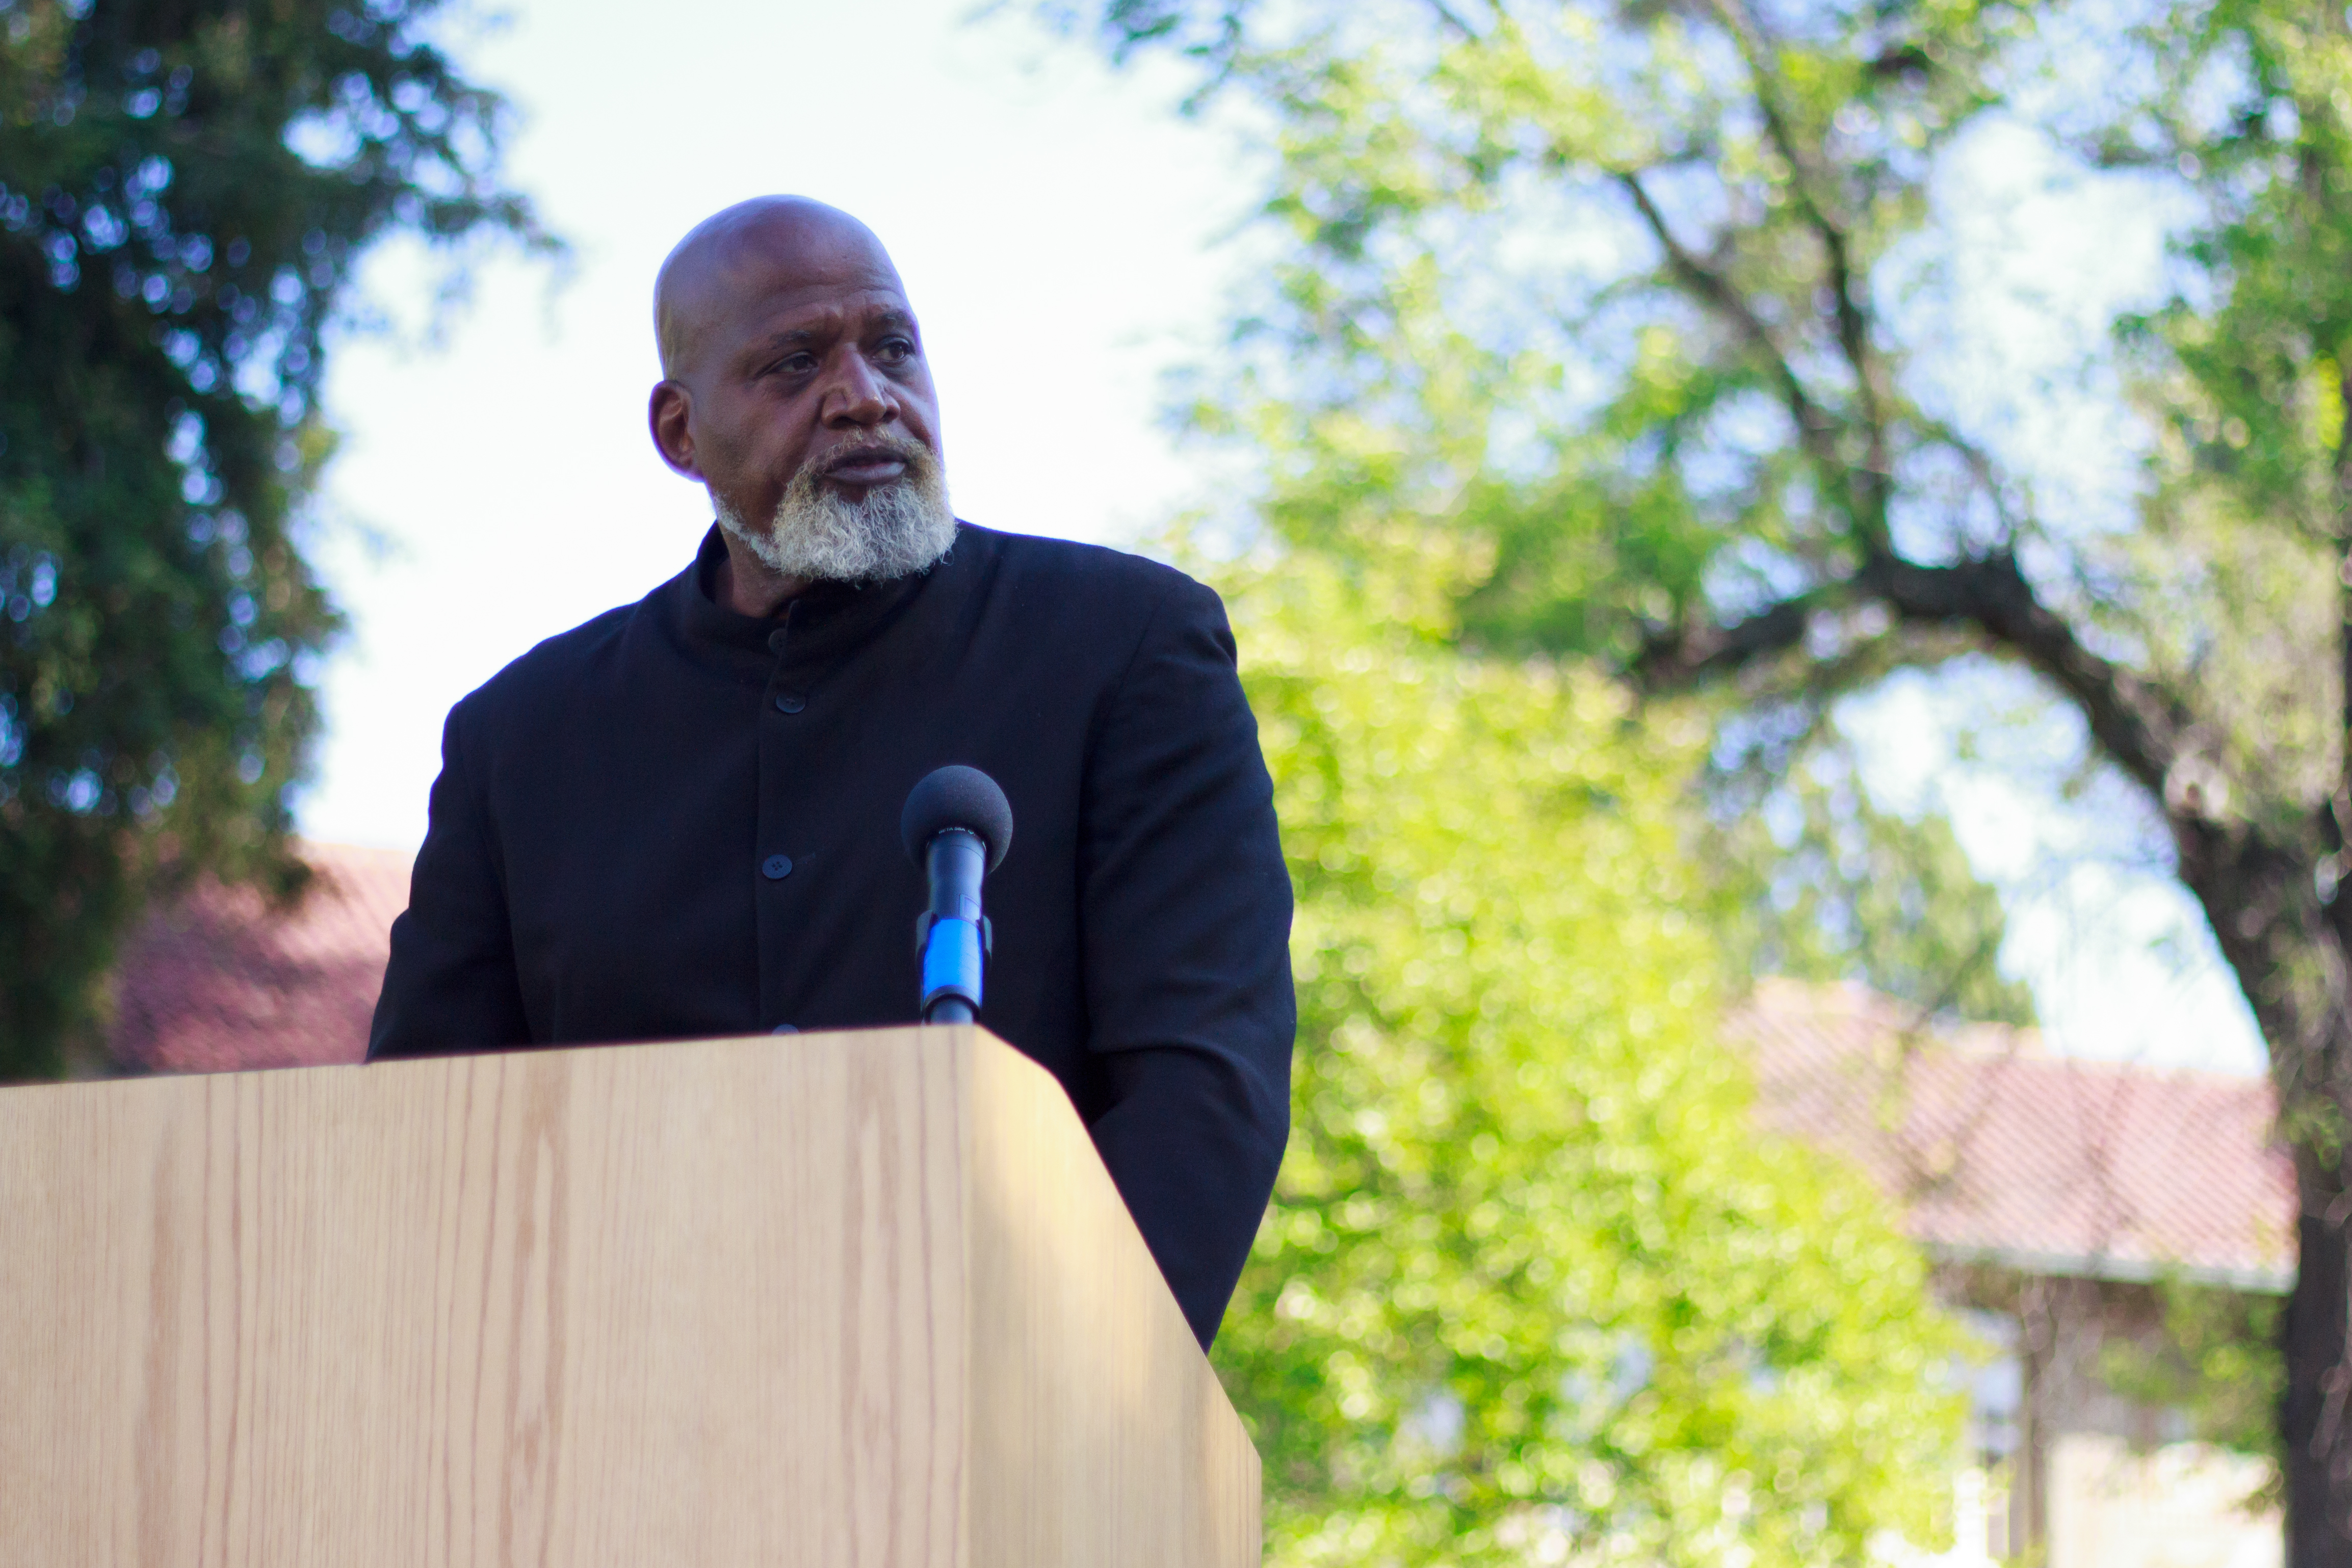 Harry Edwards speaks at a campus event in May 2012 (photo: Christina Olivas)